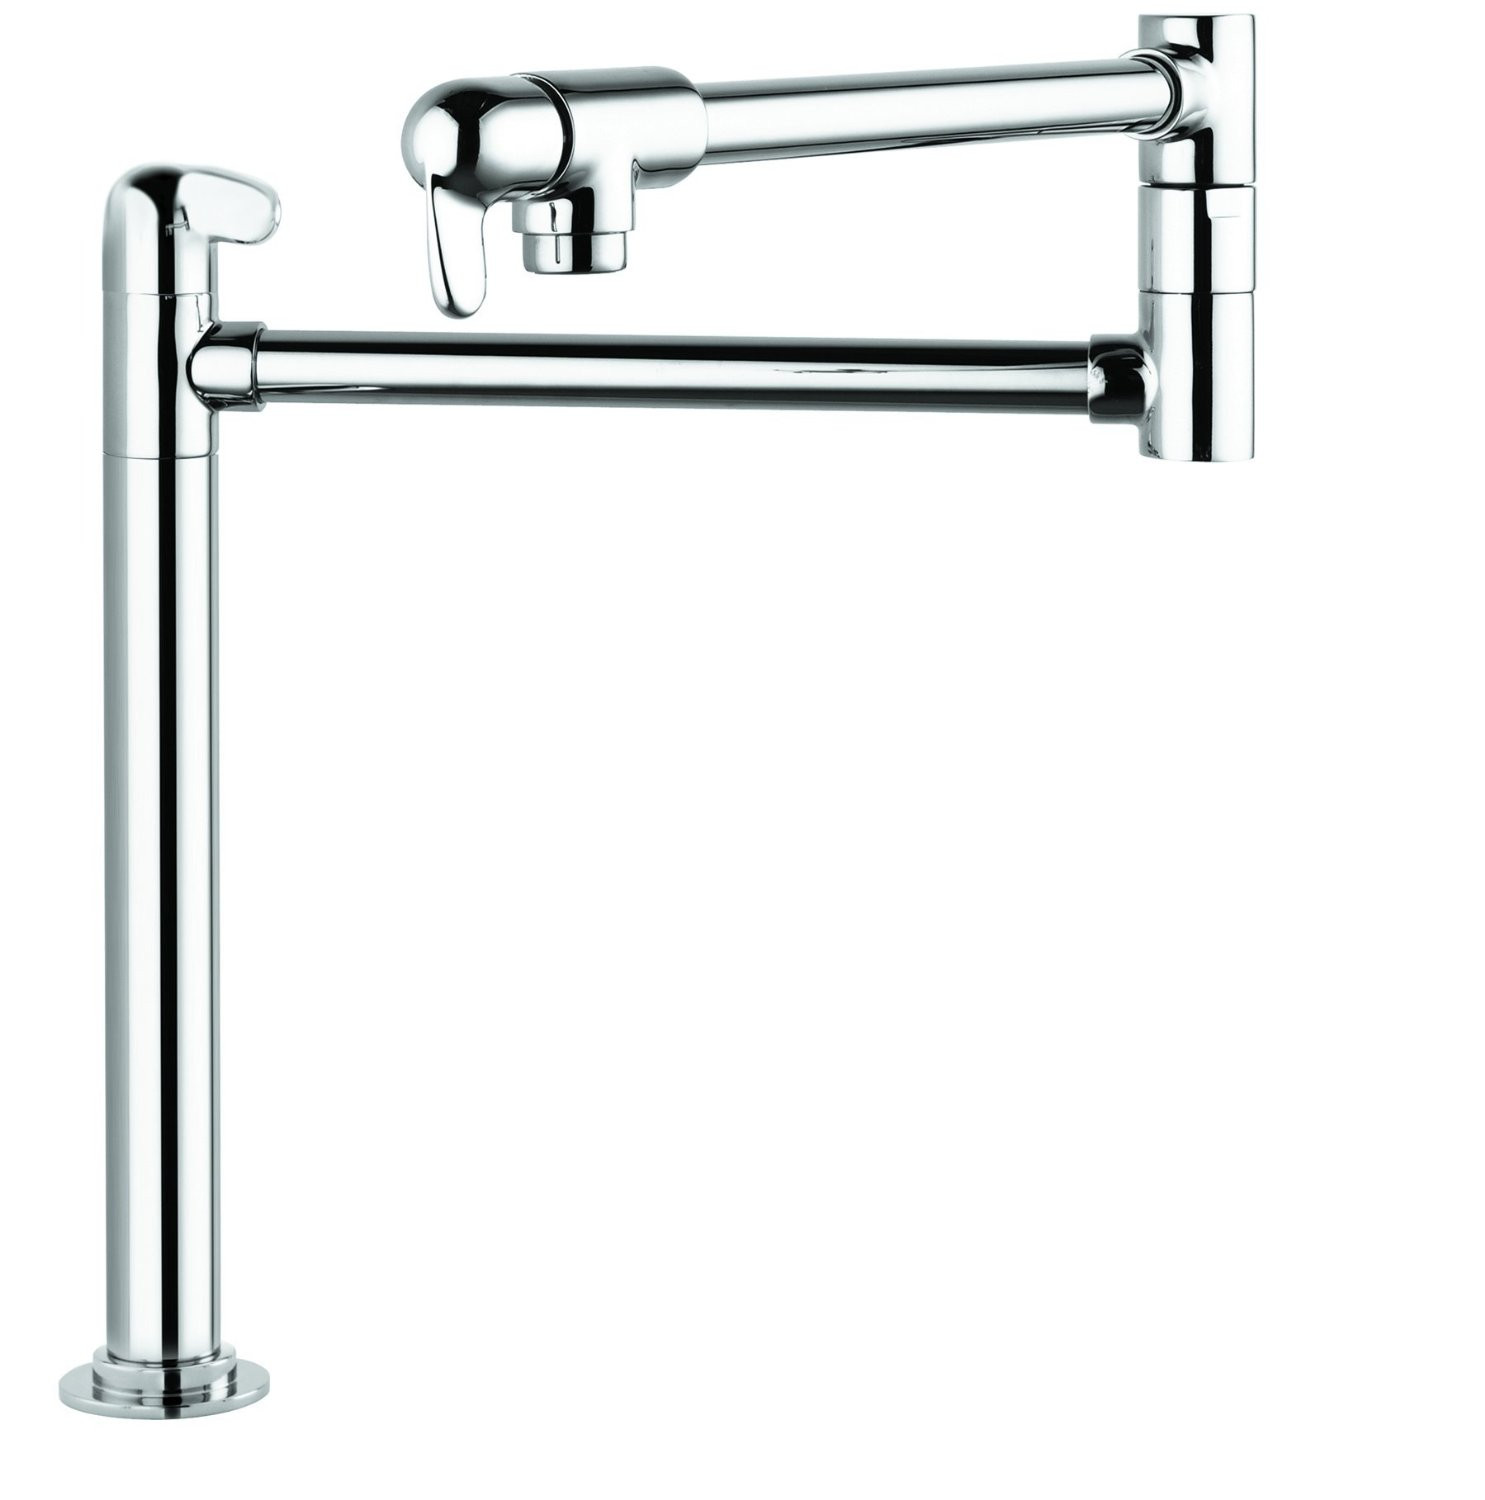 hansgrohe 04060000 Allegro E Deck Mount Potfiller Stand in Chrome